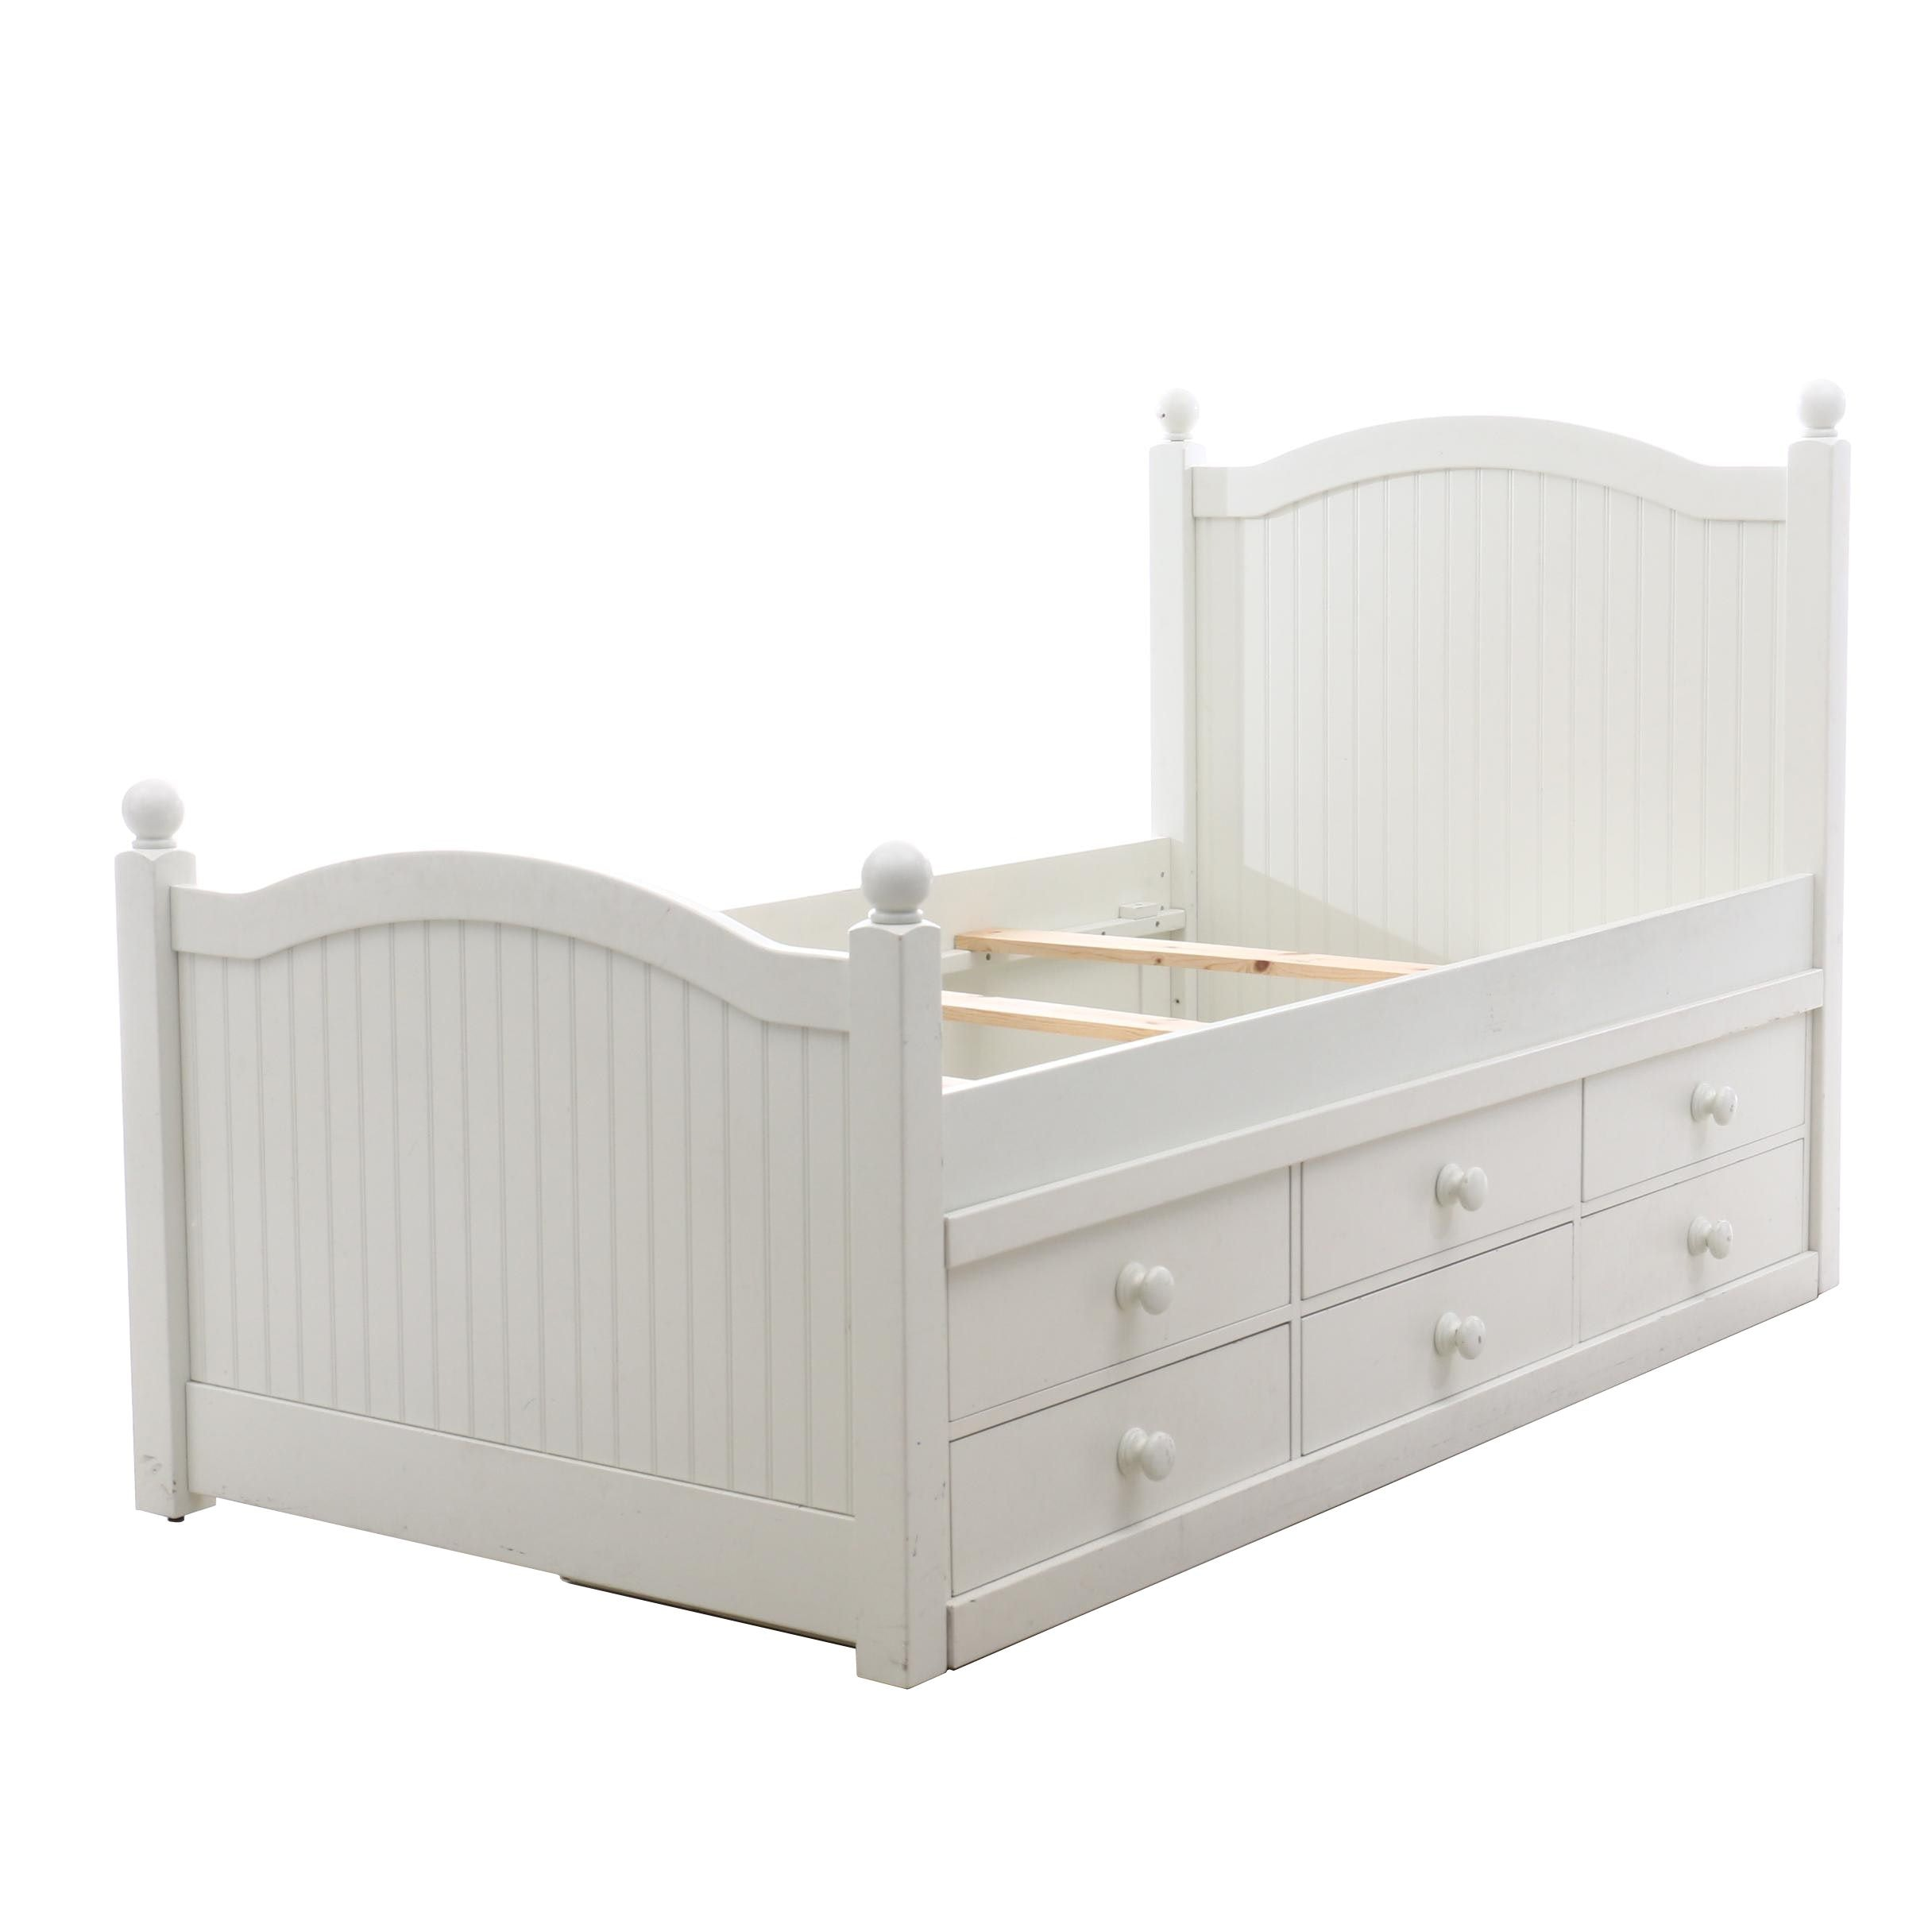 Pottery Barn Kids Twin Bed with Storage, Contemporary